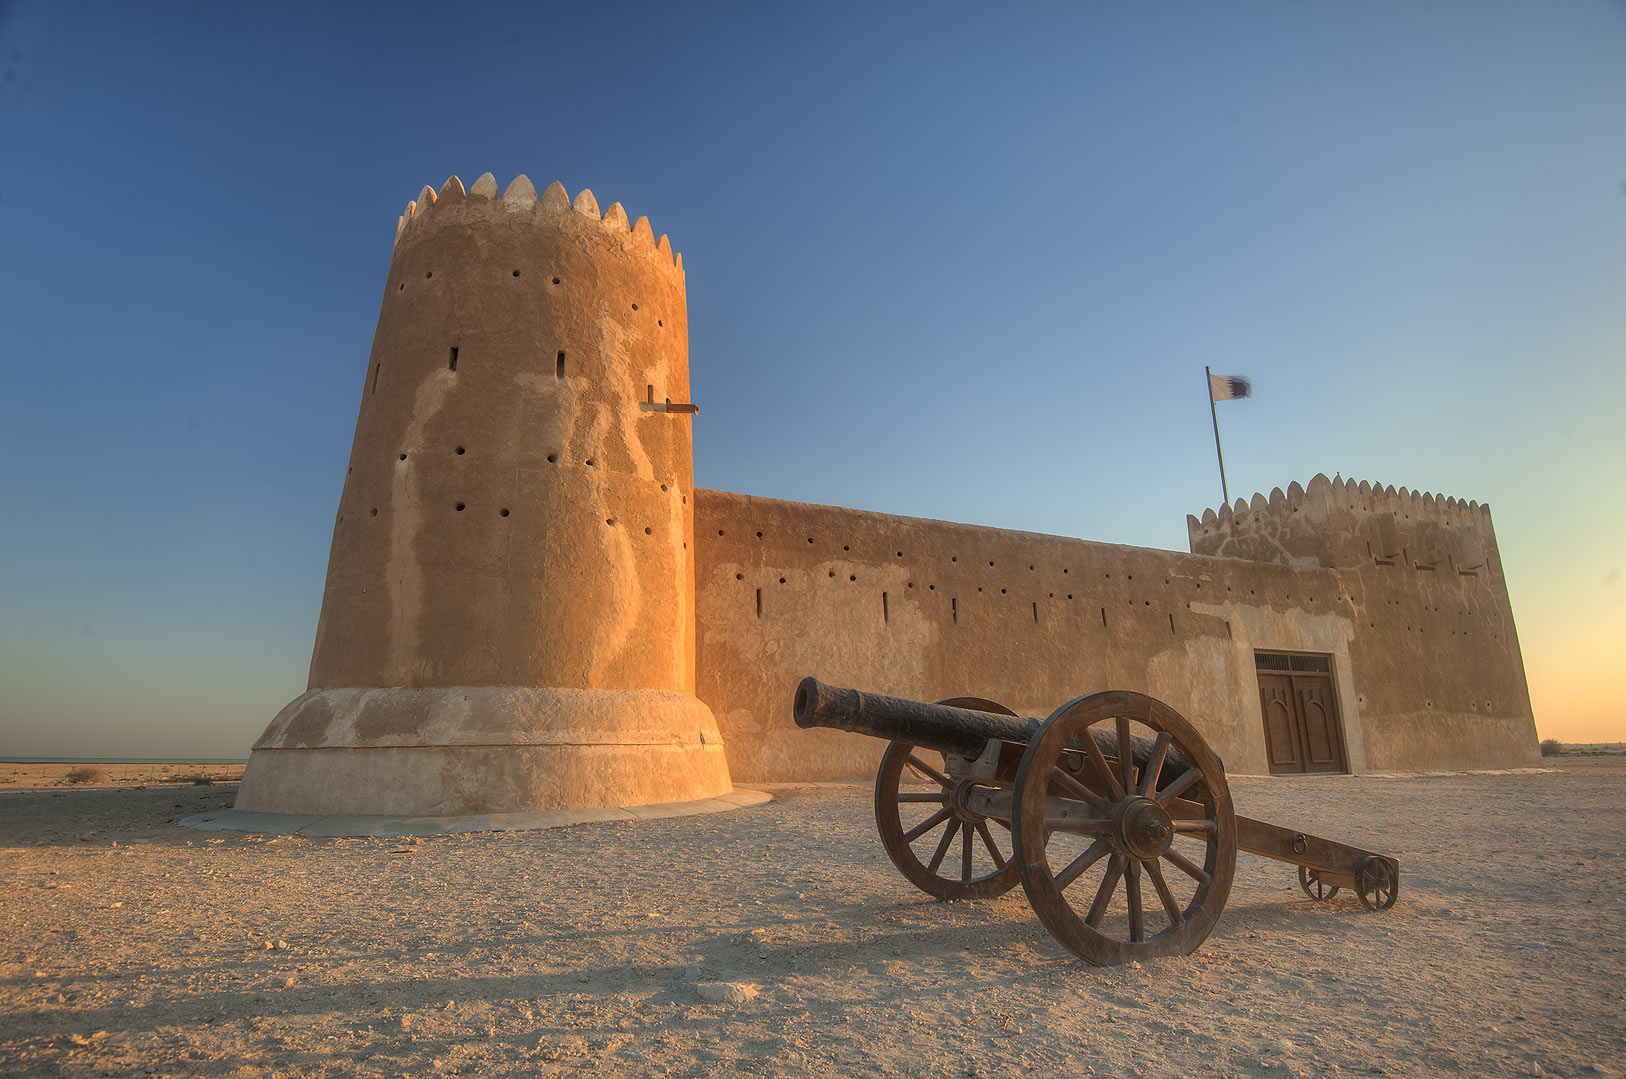 Zubara Fort in northern area (Shamal). Qatar